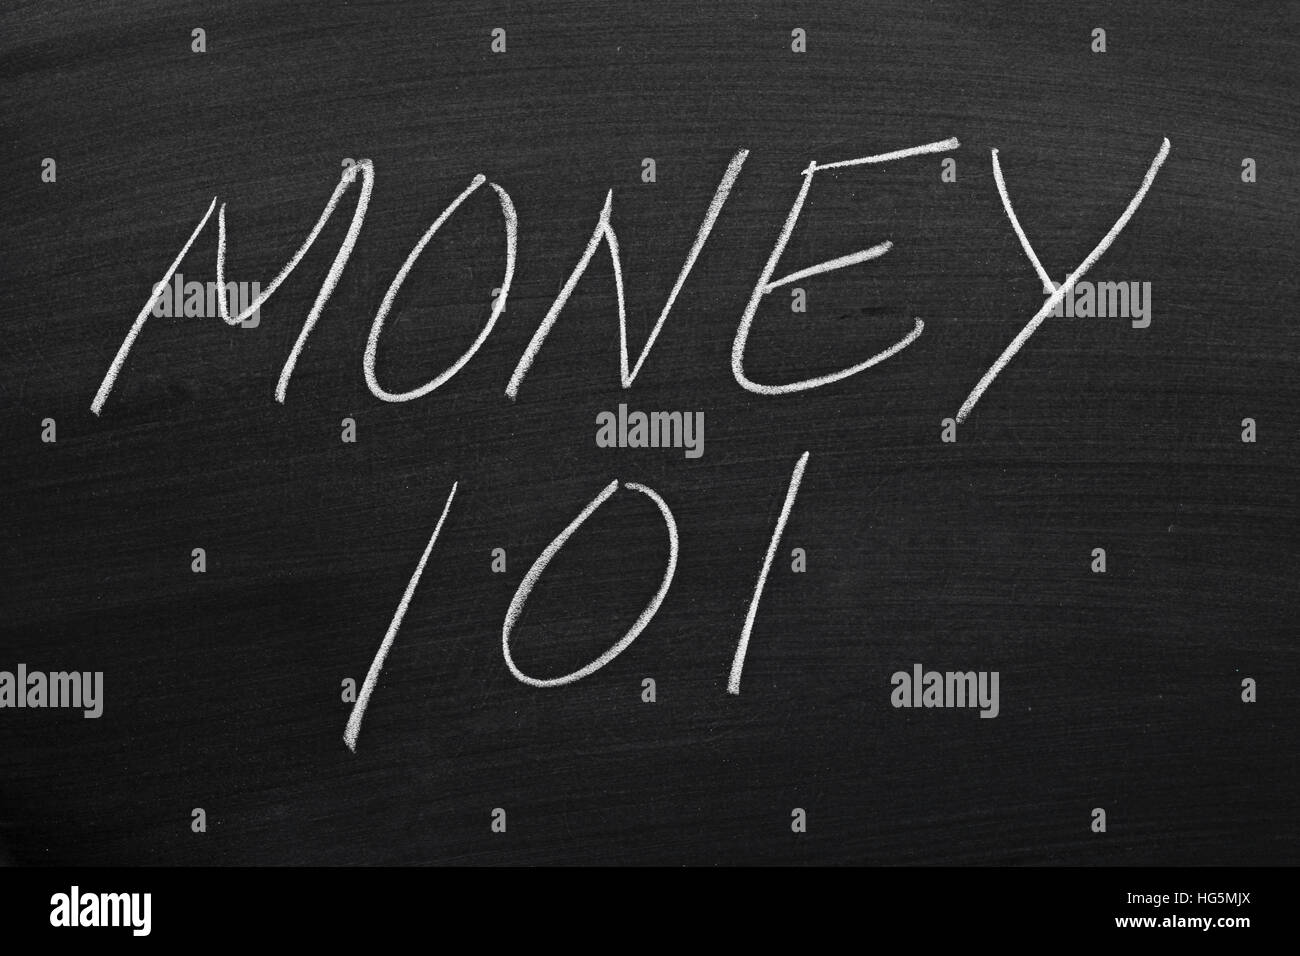 The words 'Money 101' on a blackboard in chalk - Stock Image